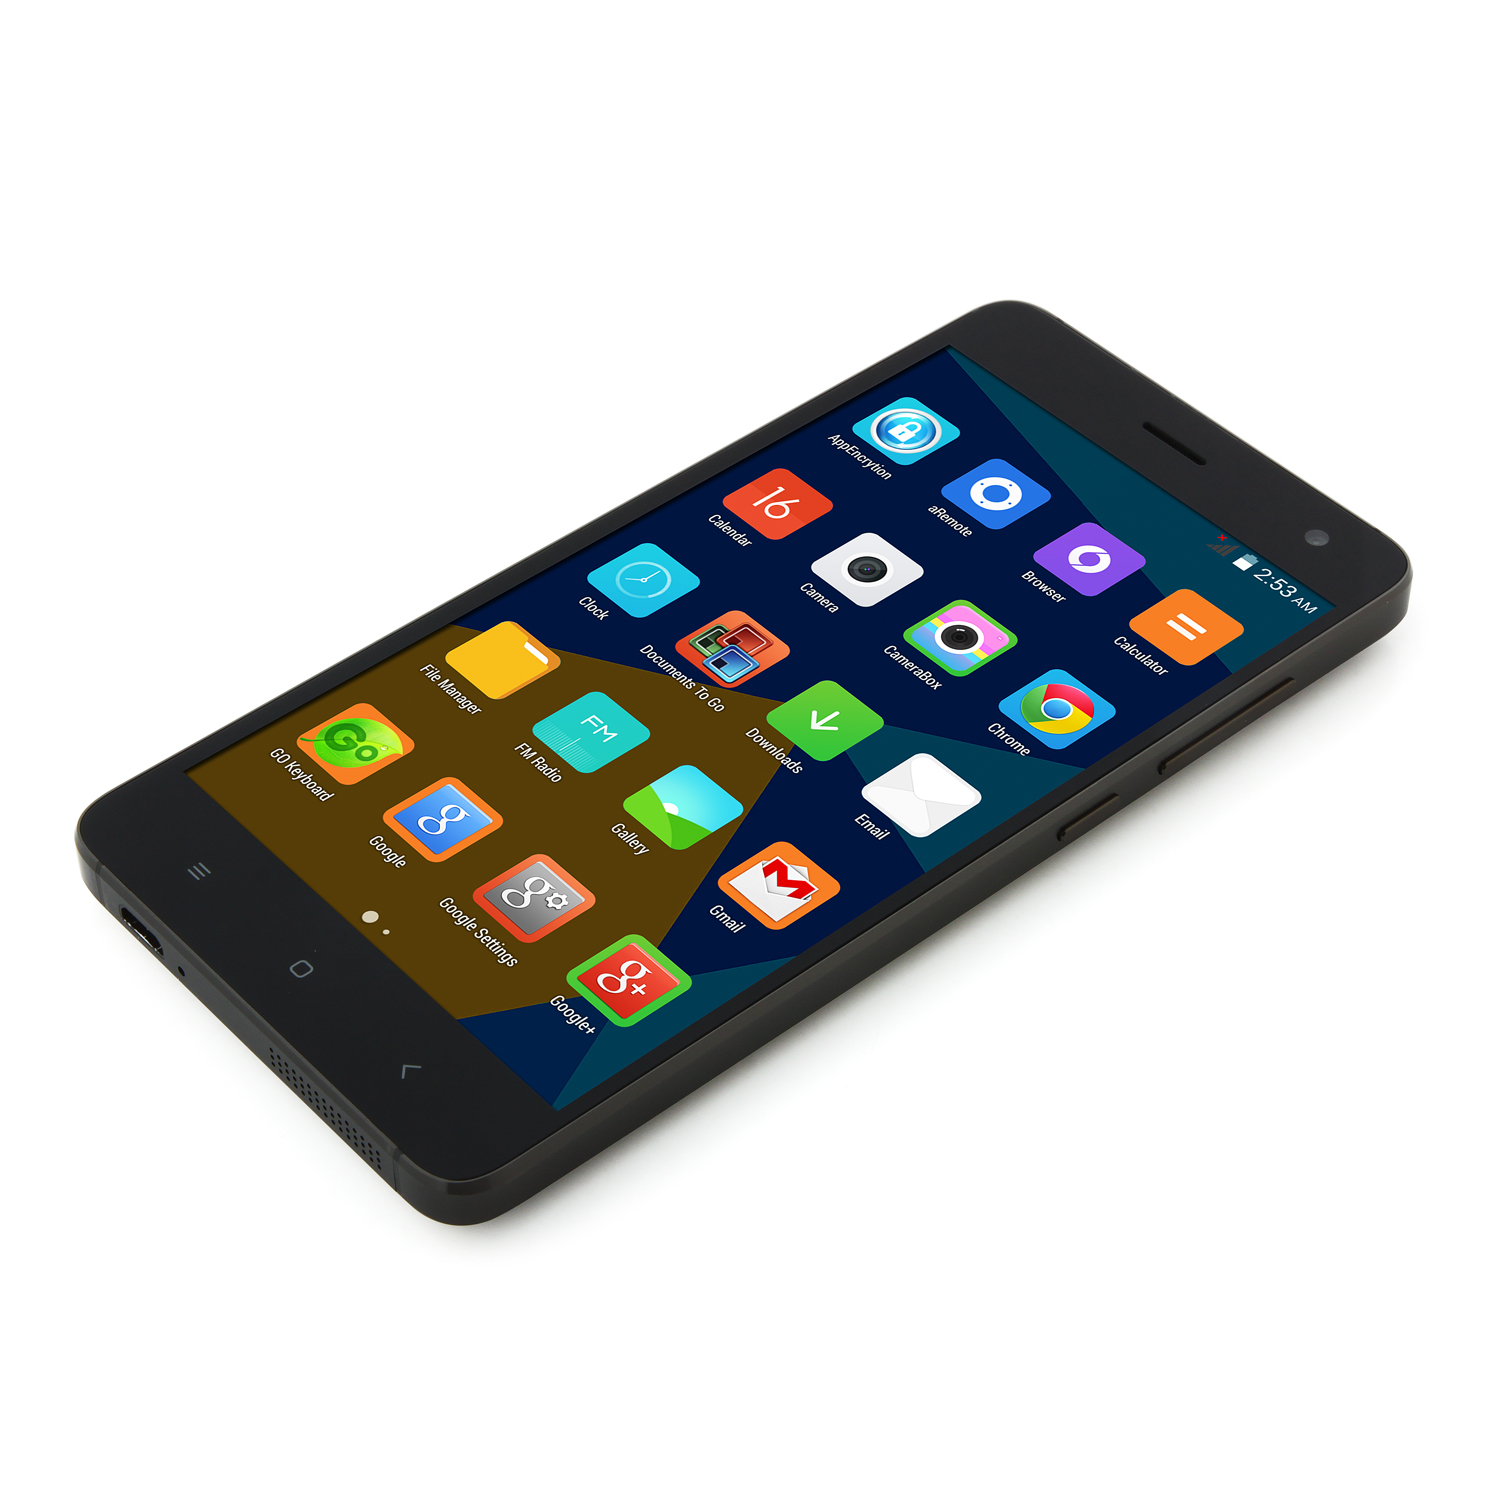 DOOGEE HITMAN DG850 Smartphone 5.0 Inch SHARP Screen 1GB 16GB 13.0MP Camera- Black